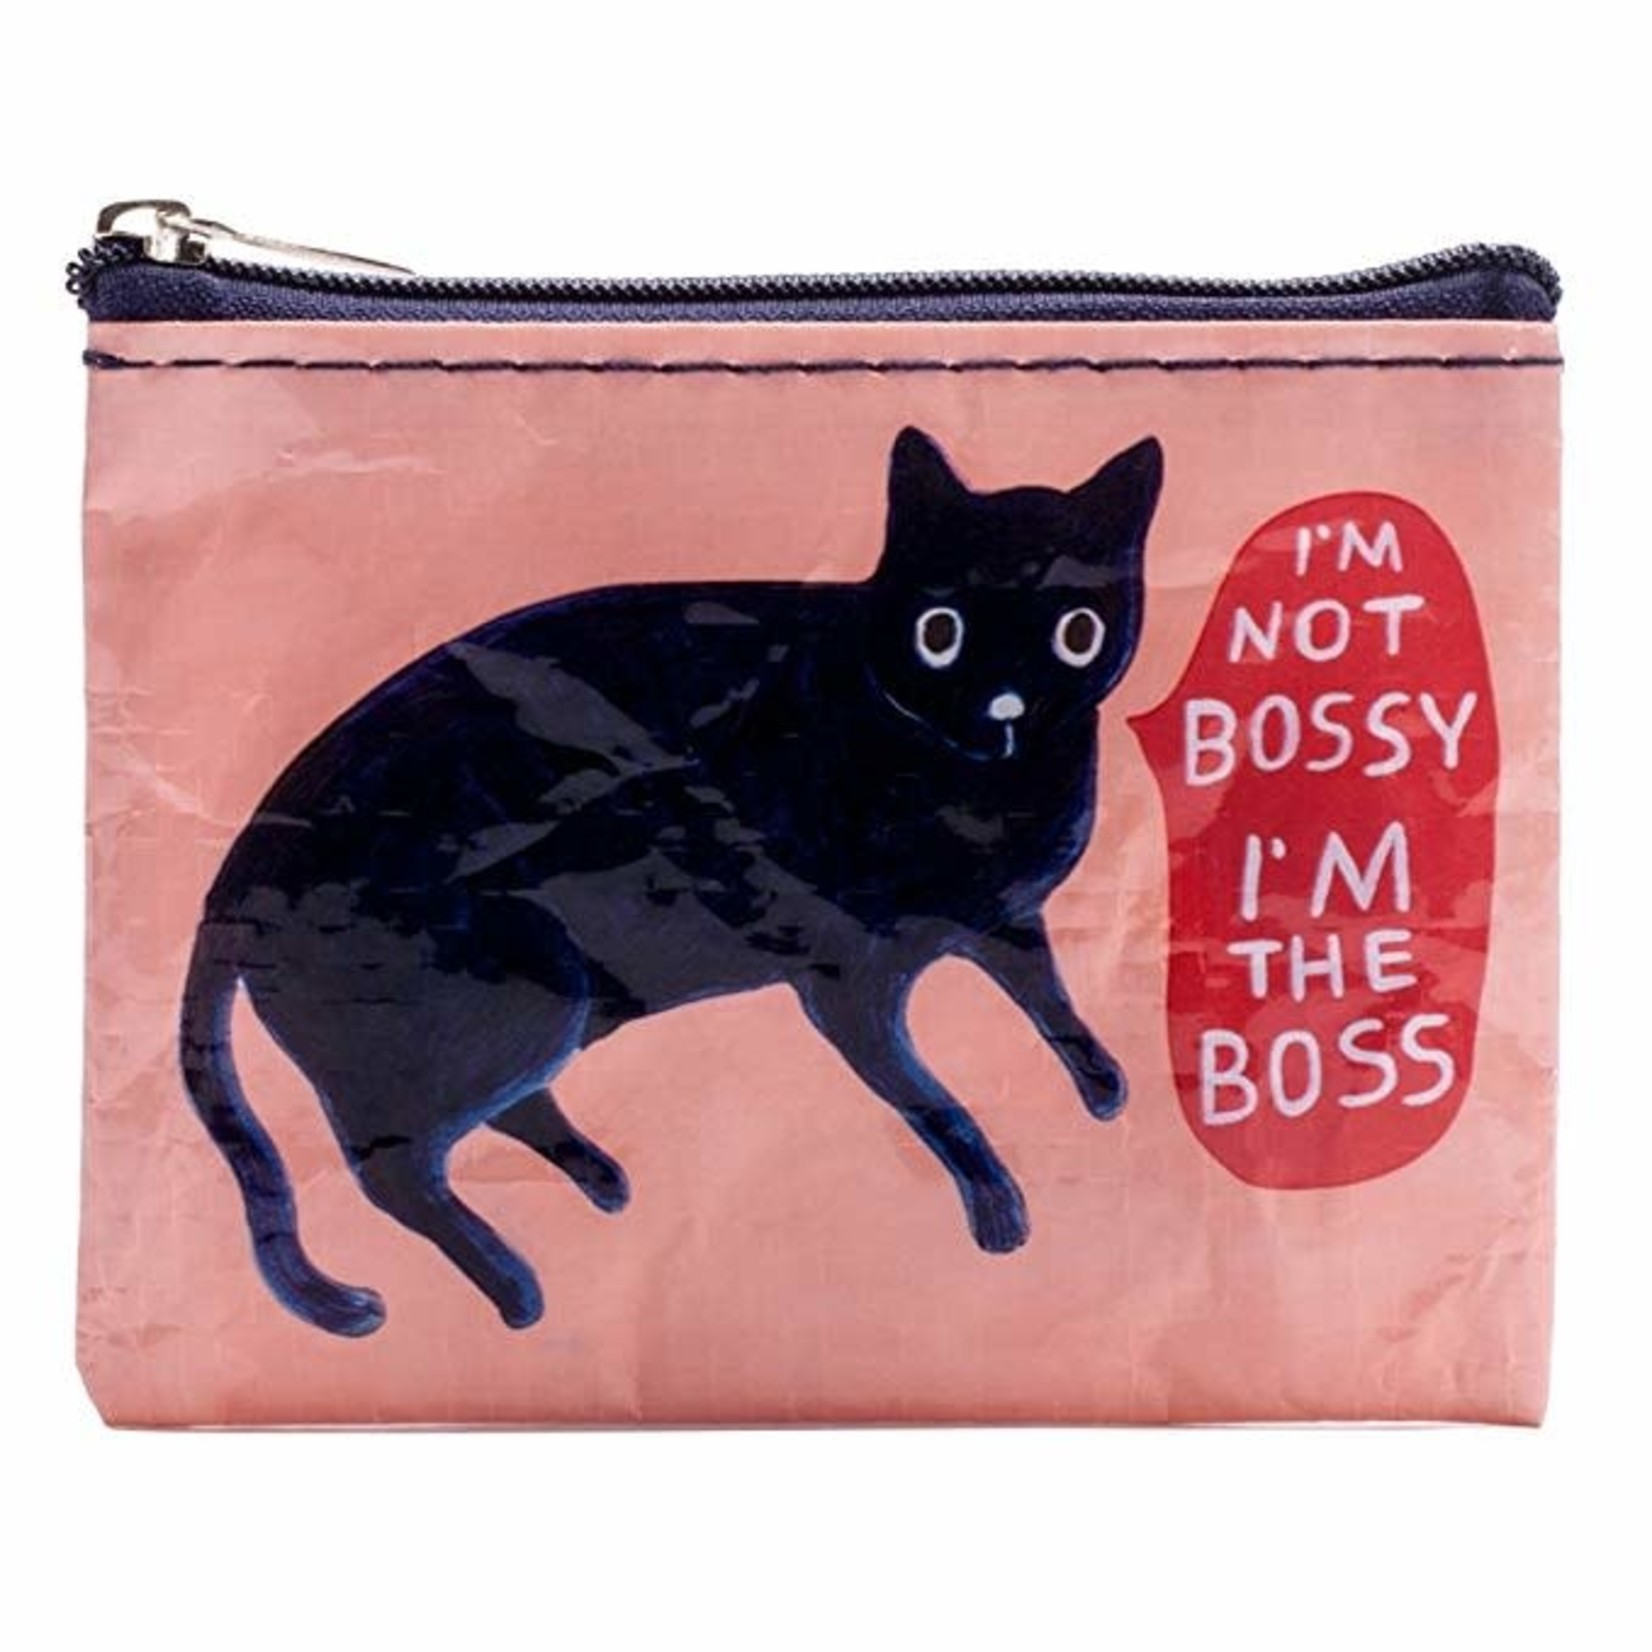 Purse (Coin) - I'm Not Bossy I'm The Boss